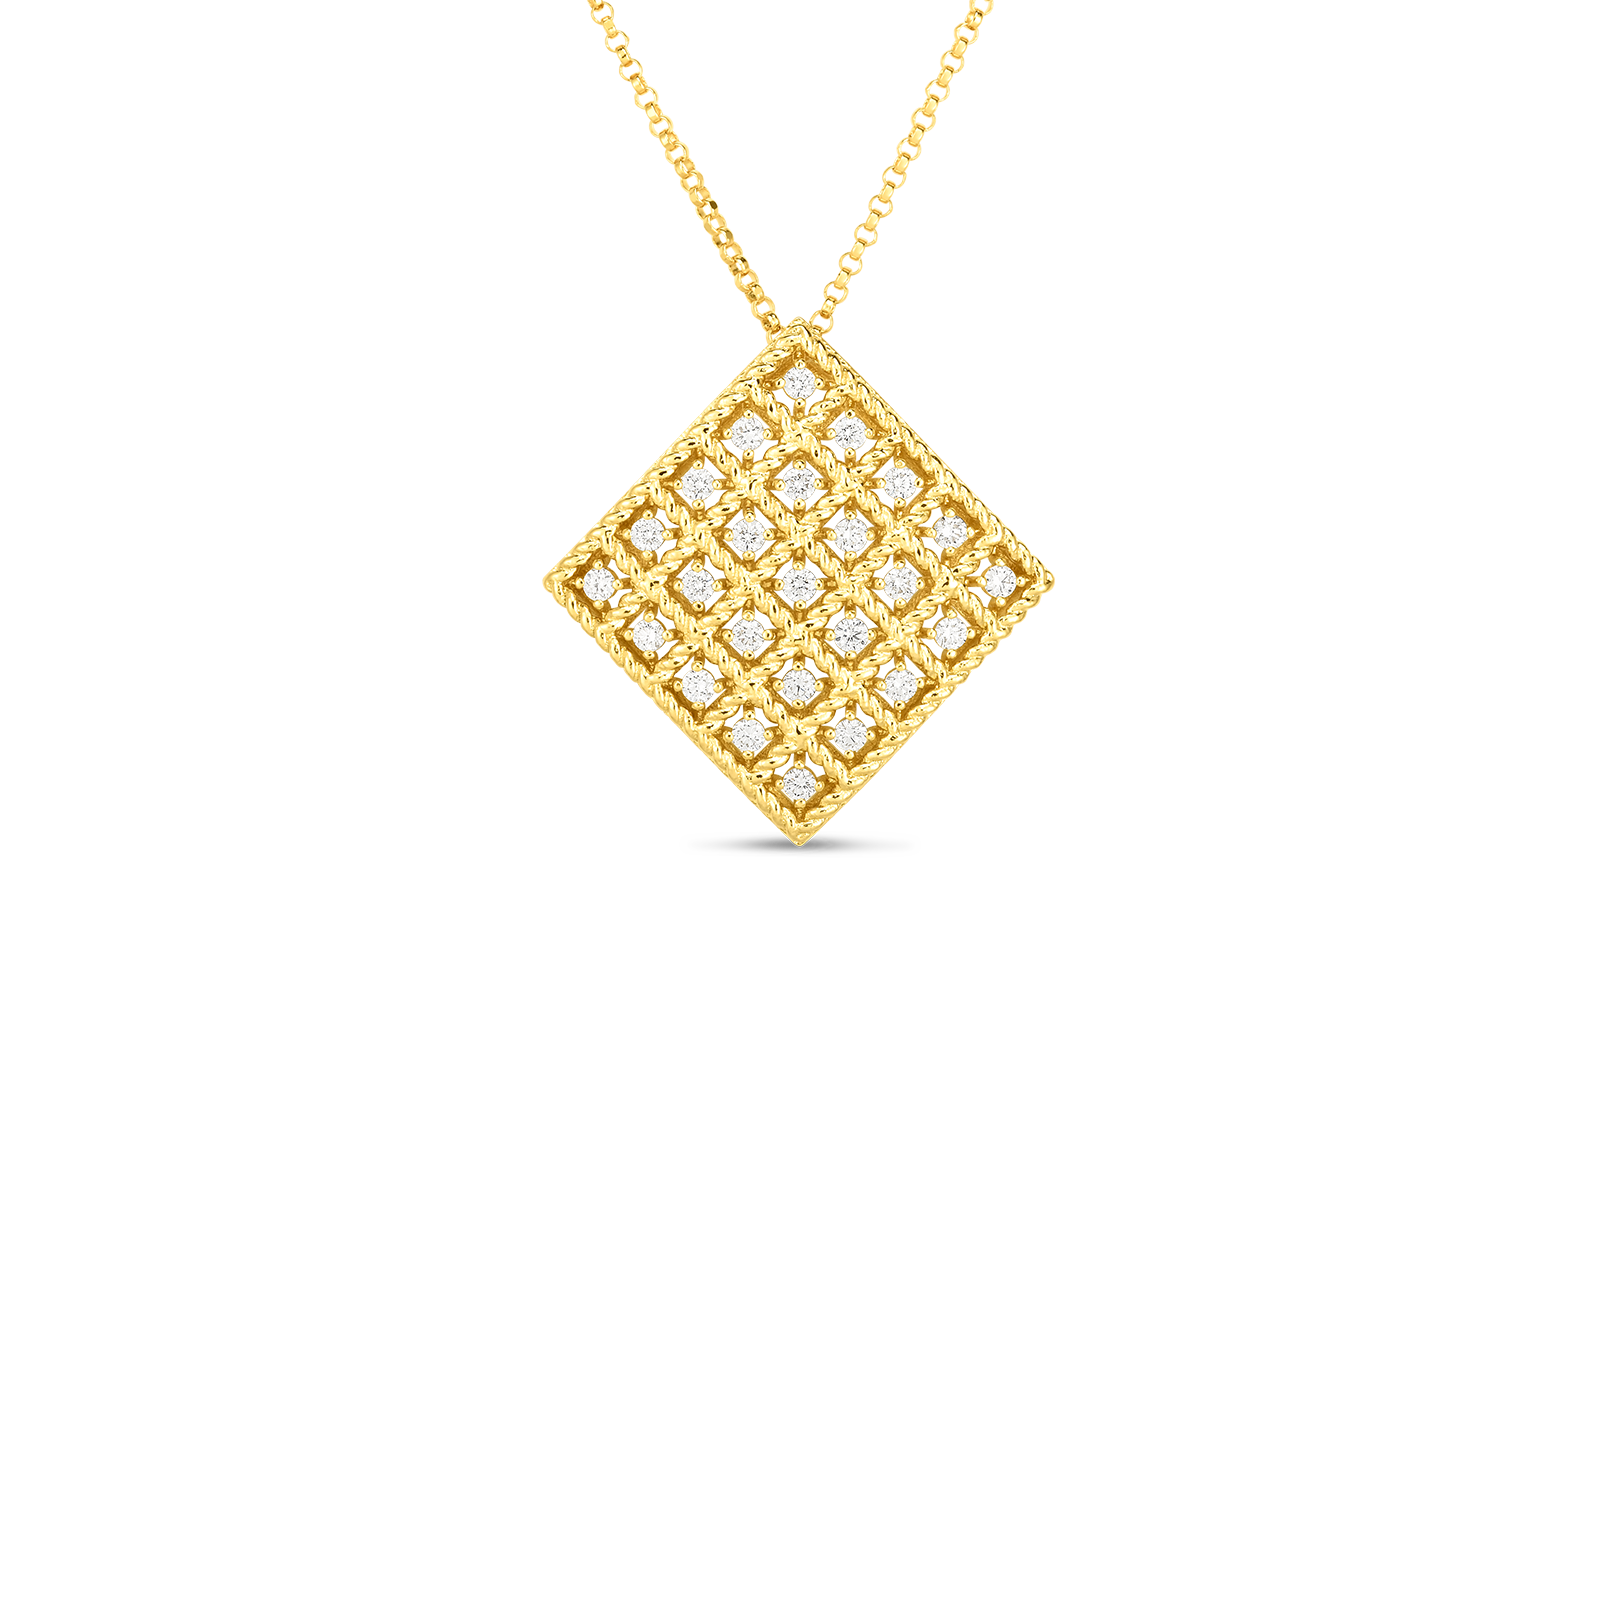 18k Gold & Diamond Byzantine Barocco Medium Pendant